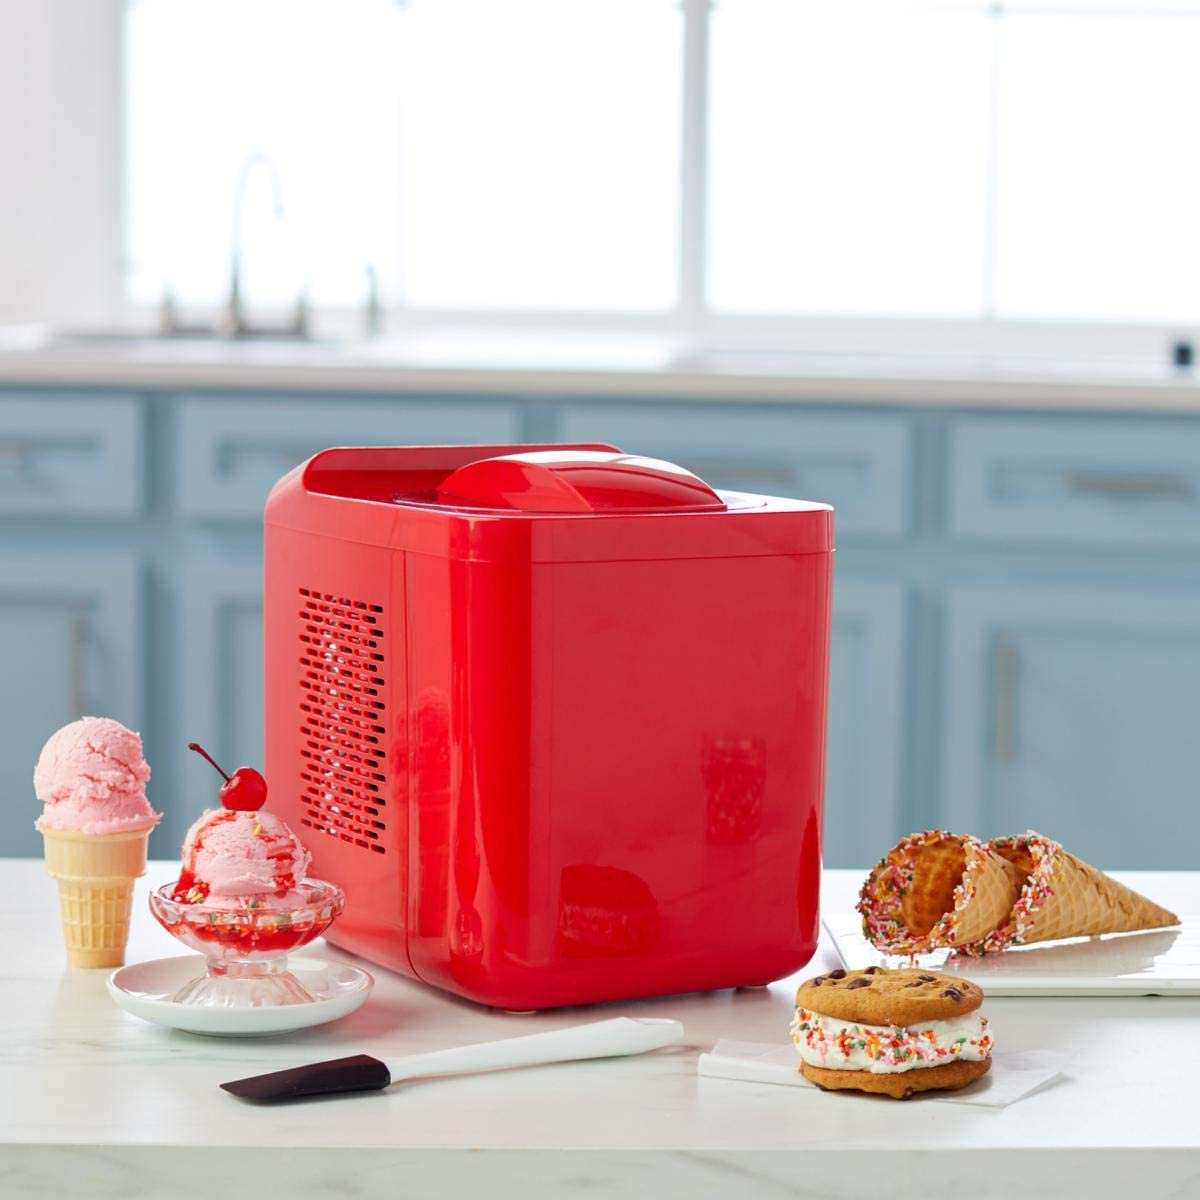 Wolfgang Puck 2.1-Pint 2 Cooling Chip Ice Cream Maker Model 683-942